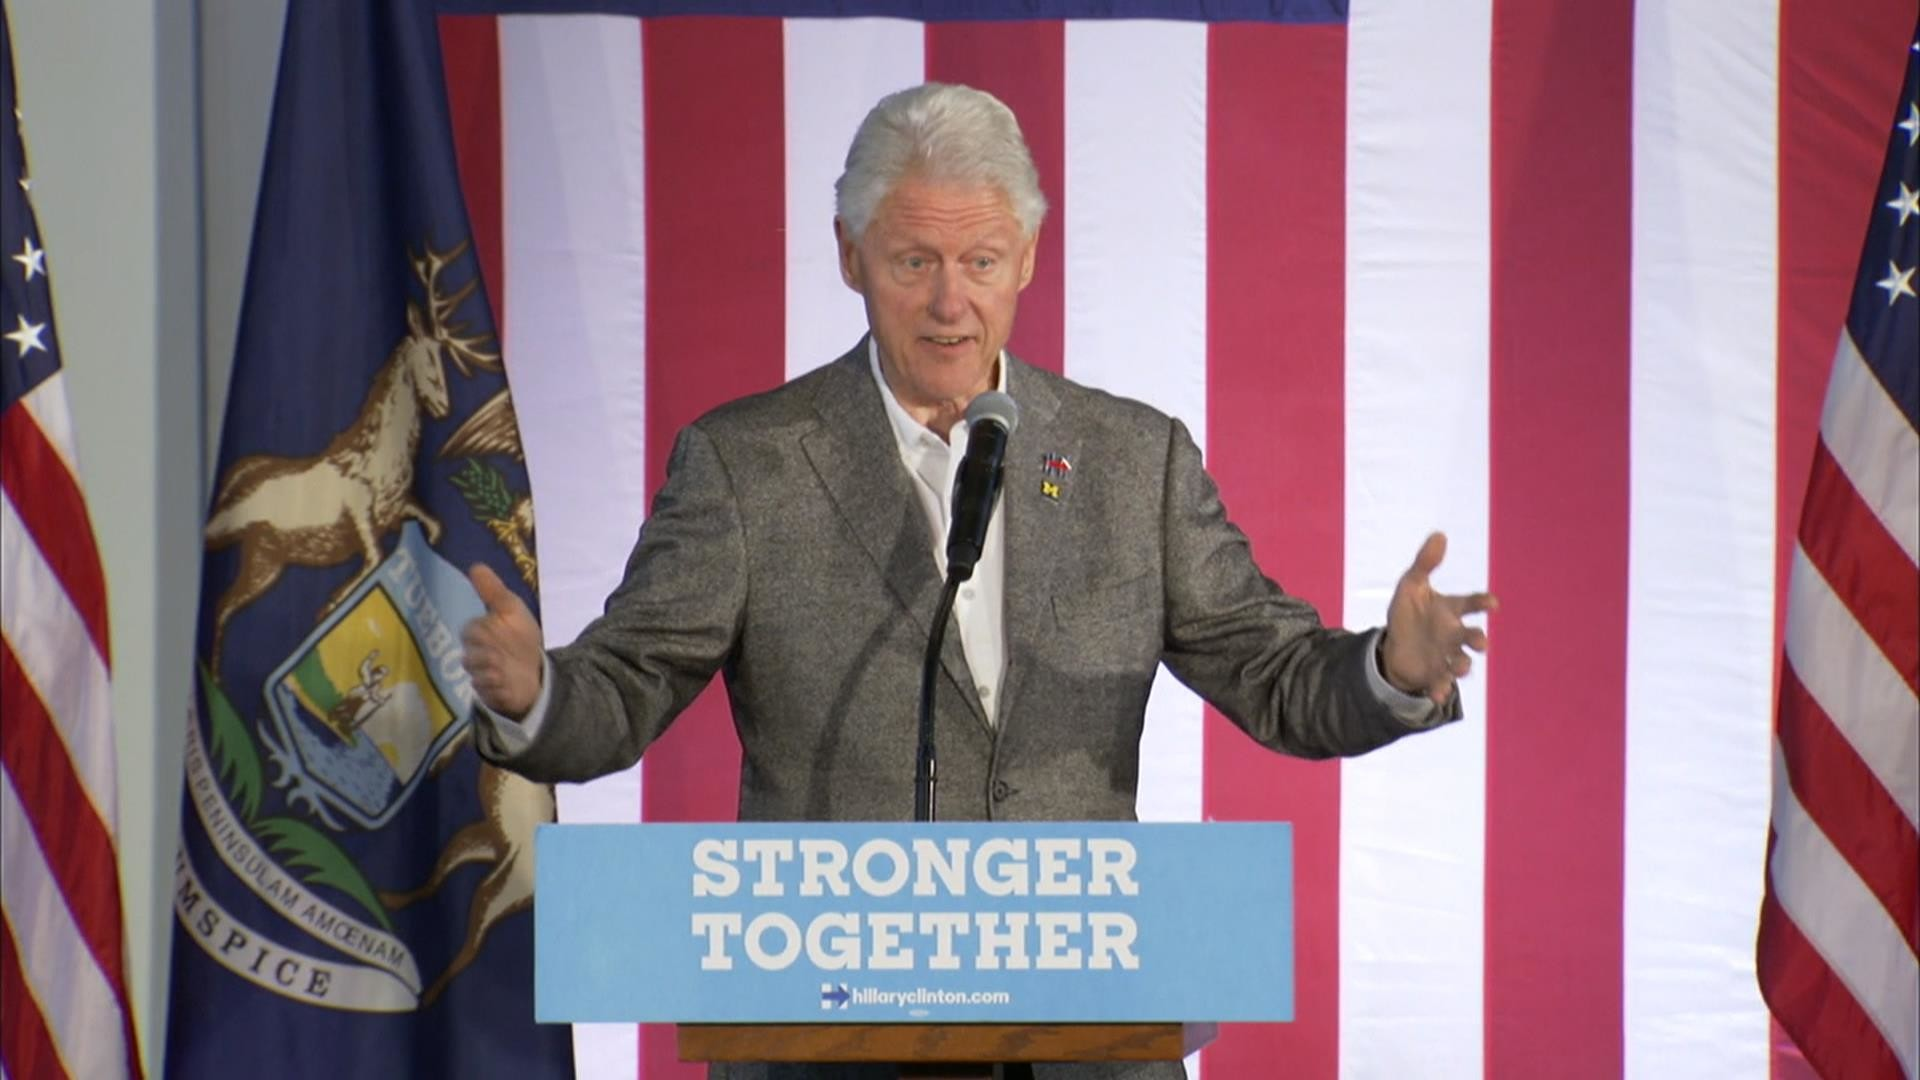 Bill Clinton Attempts to Clarify Scathing Obamacare Comments – NBC News